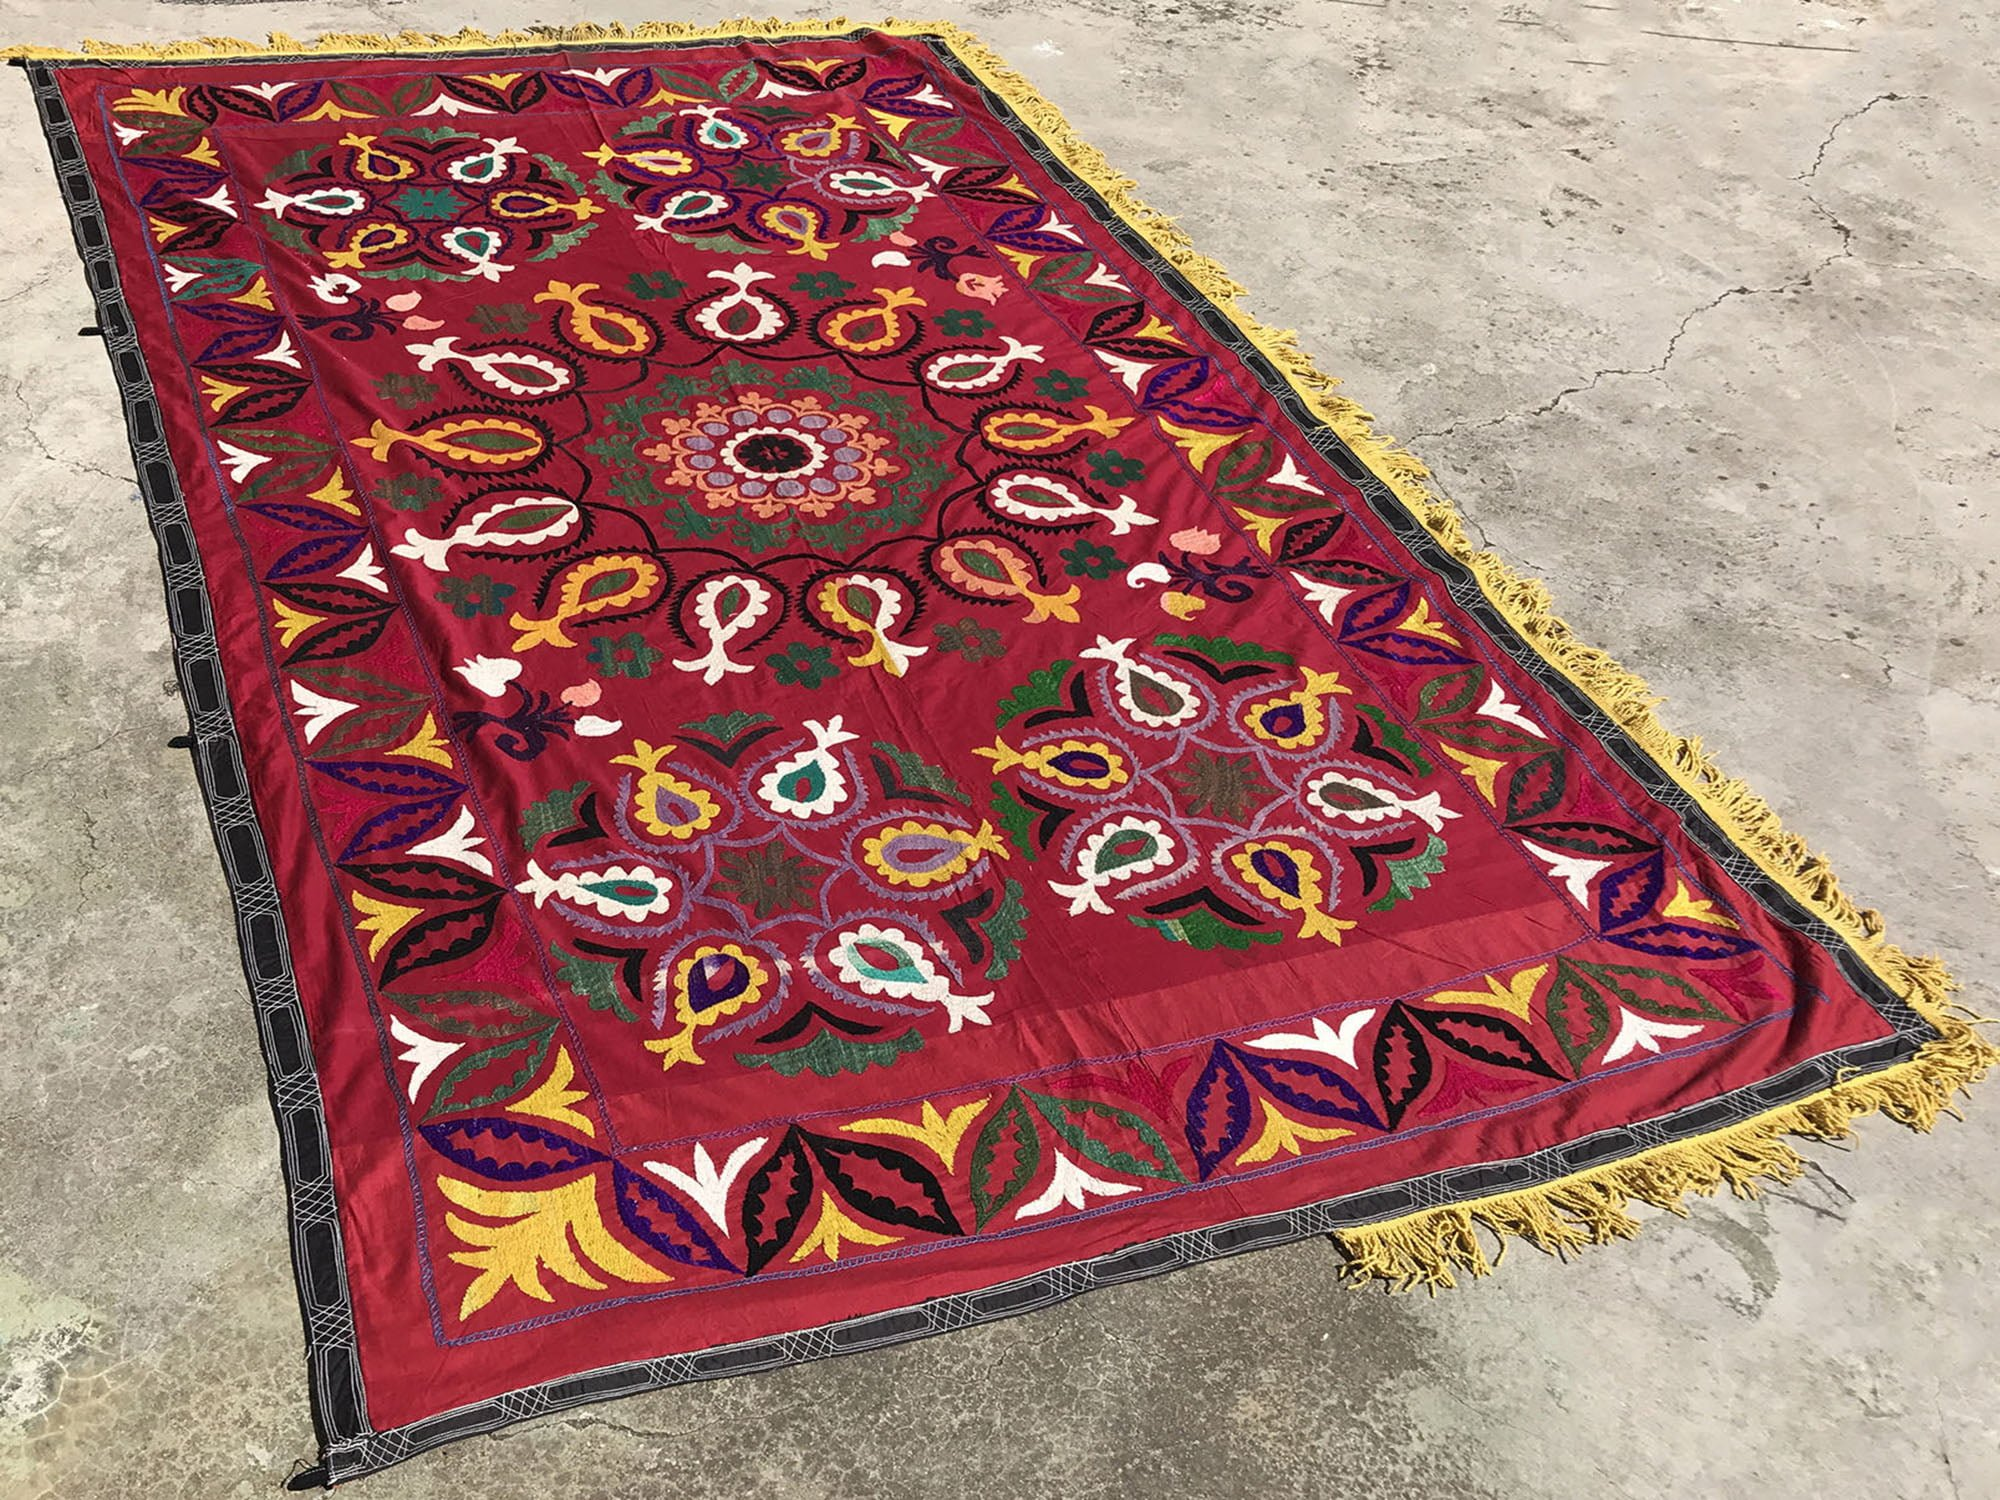 Boho Suzani Wall Hanging Antique Wall Decor 2x13 Feet LONG Suzani Fabric With Special Tassel Vintage Suzani Table Runner OLD Suzanis